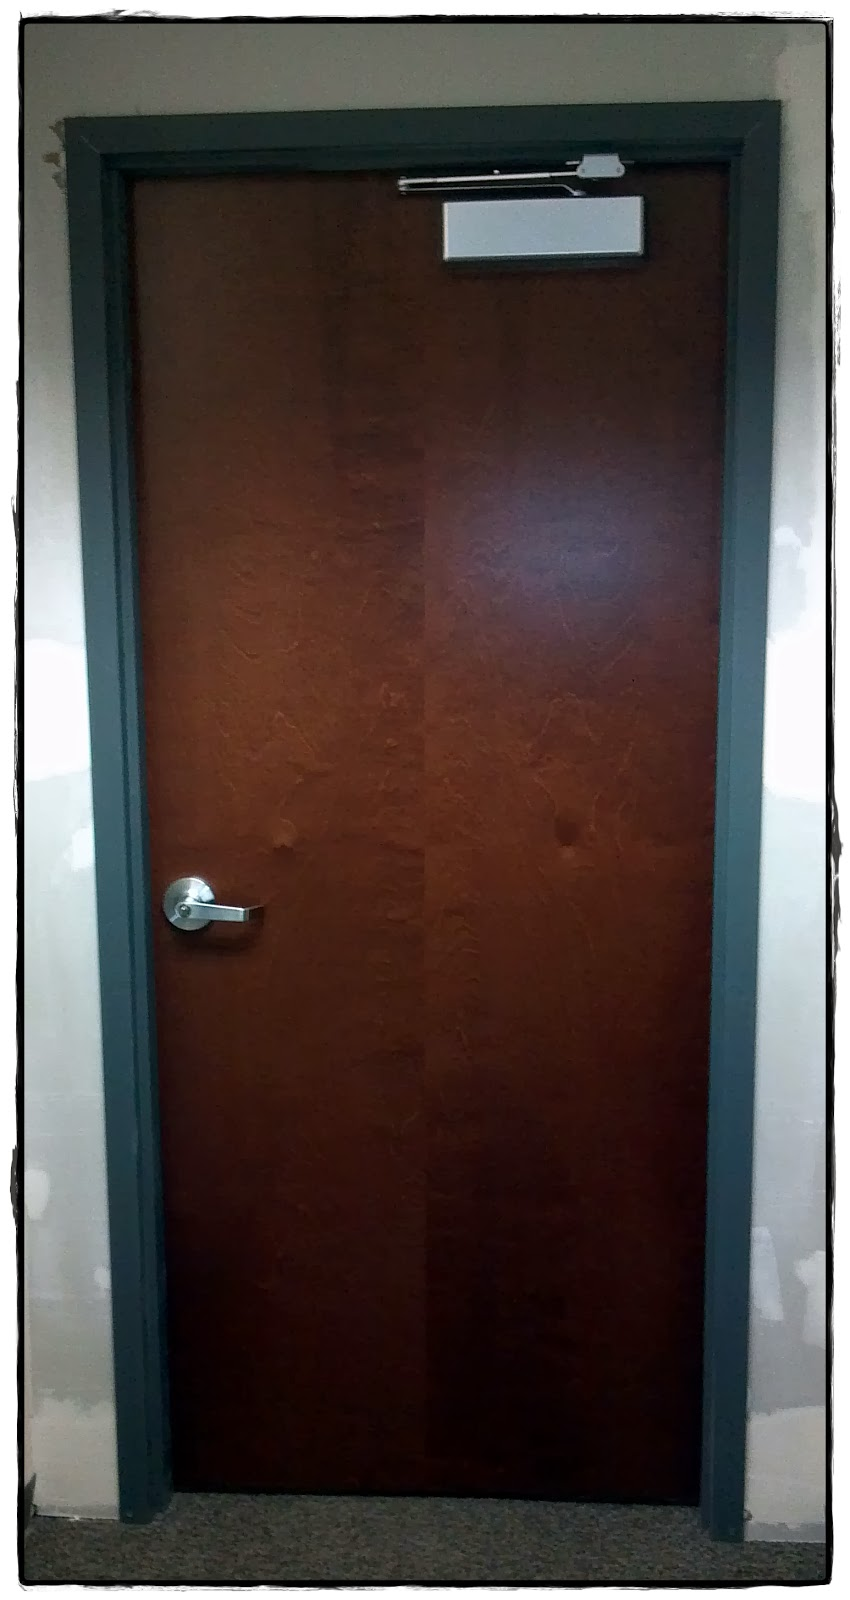 Factory prefinished commercial wood doors available from ...